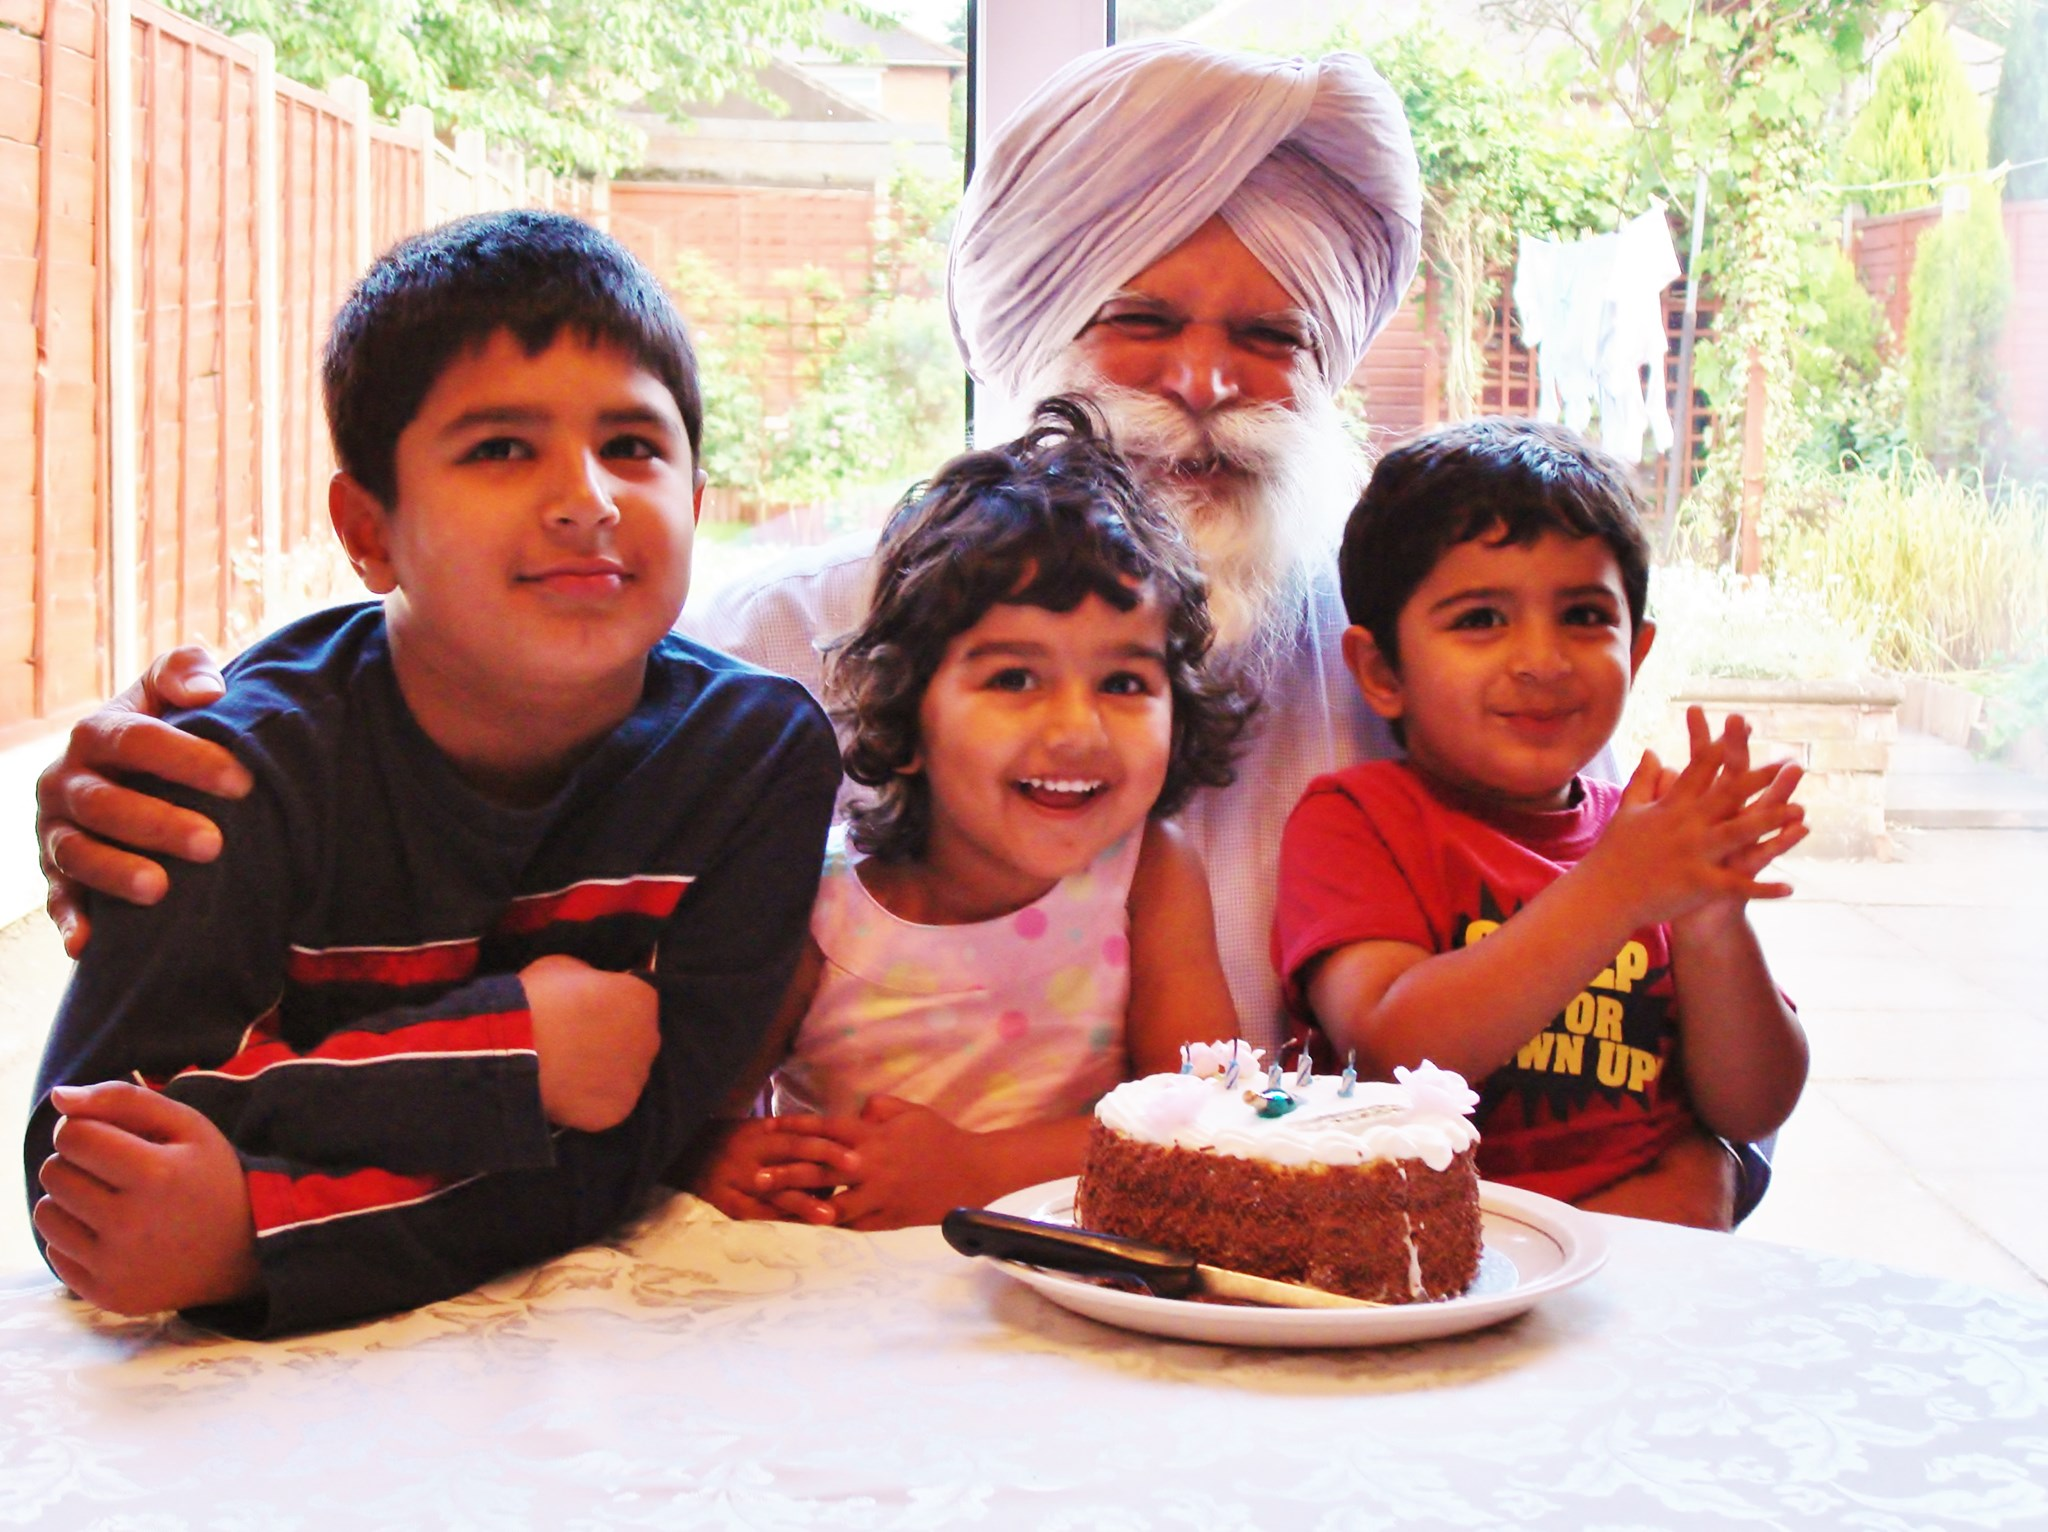 Cake and the Grandkids (Perfect Combo)